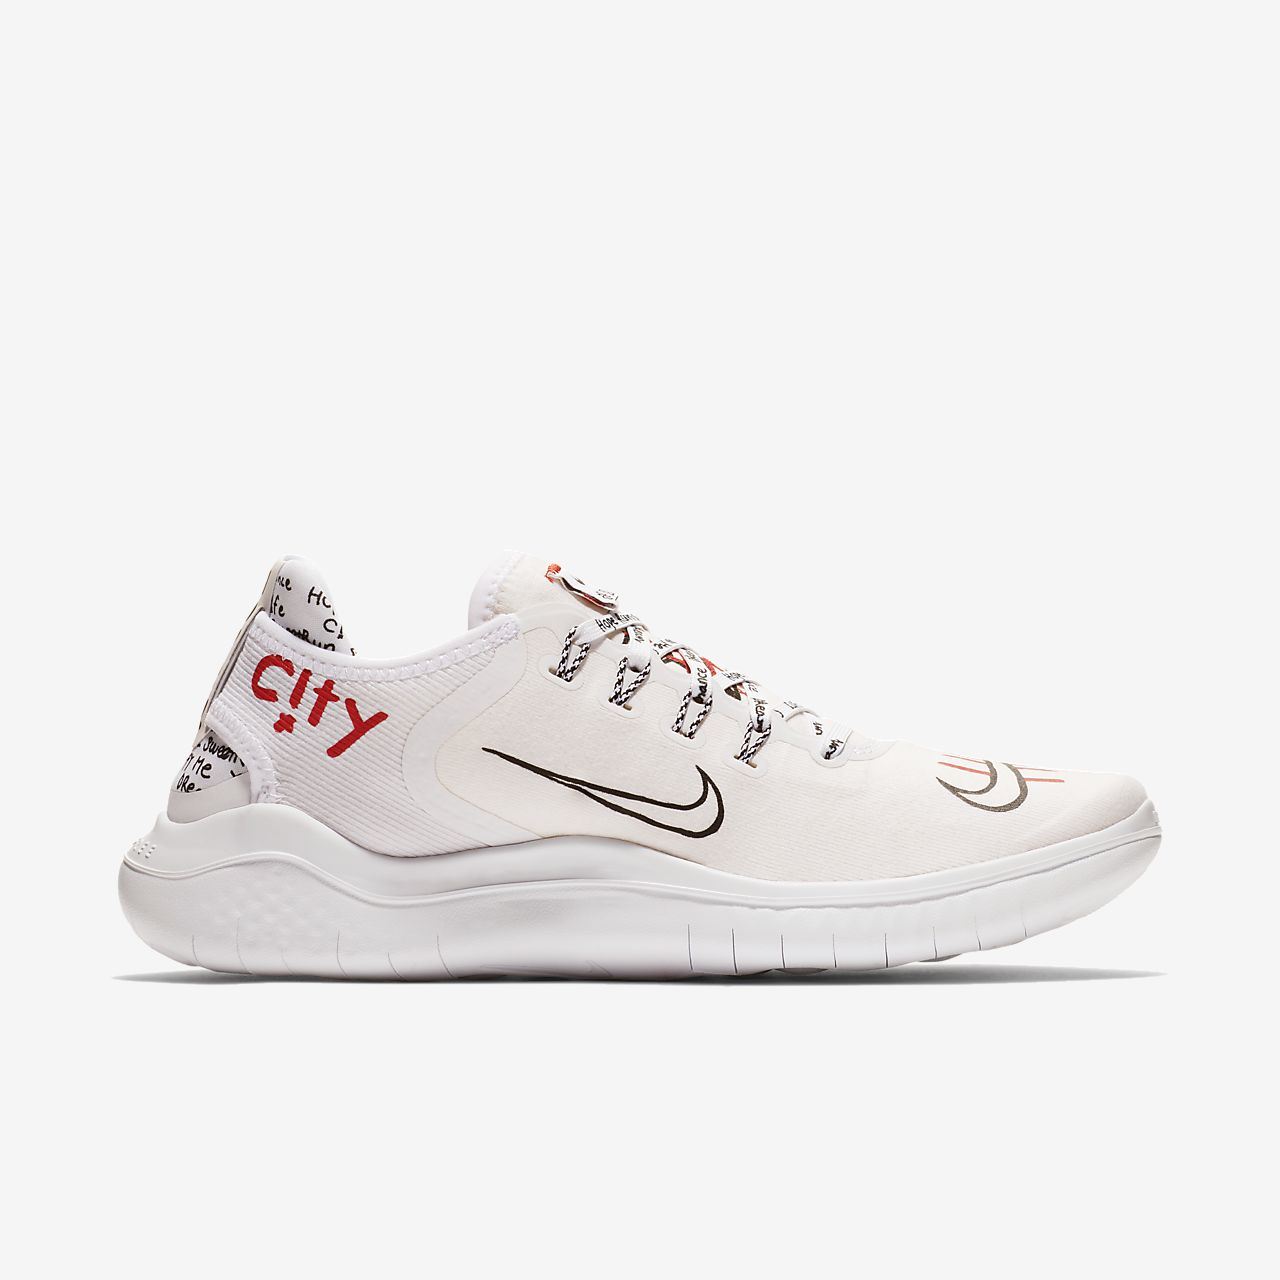 1cb88c0804088 Nike x Novo Free RN 2018 T-Shirt for Your Feet 女子跑步鞋耐克官网中国